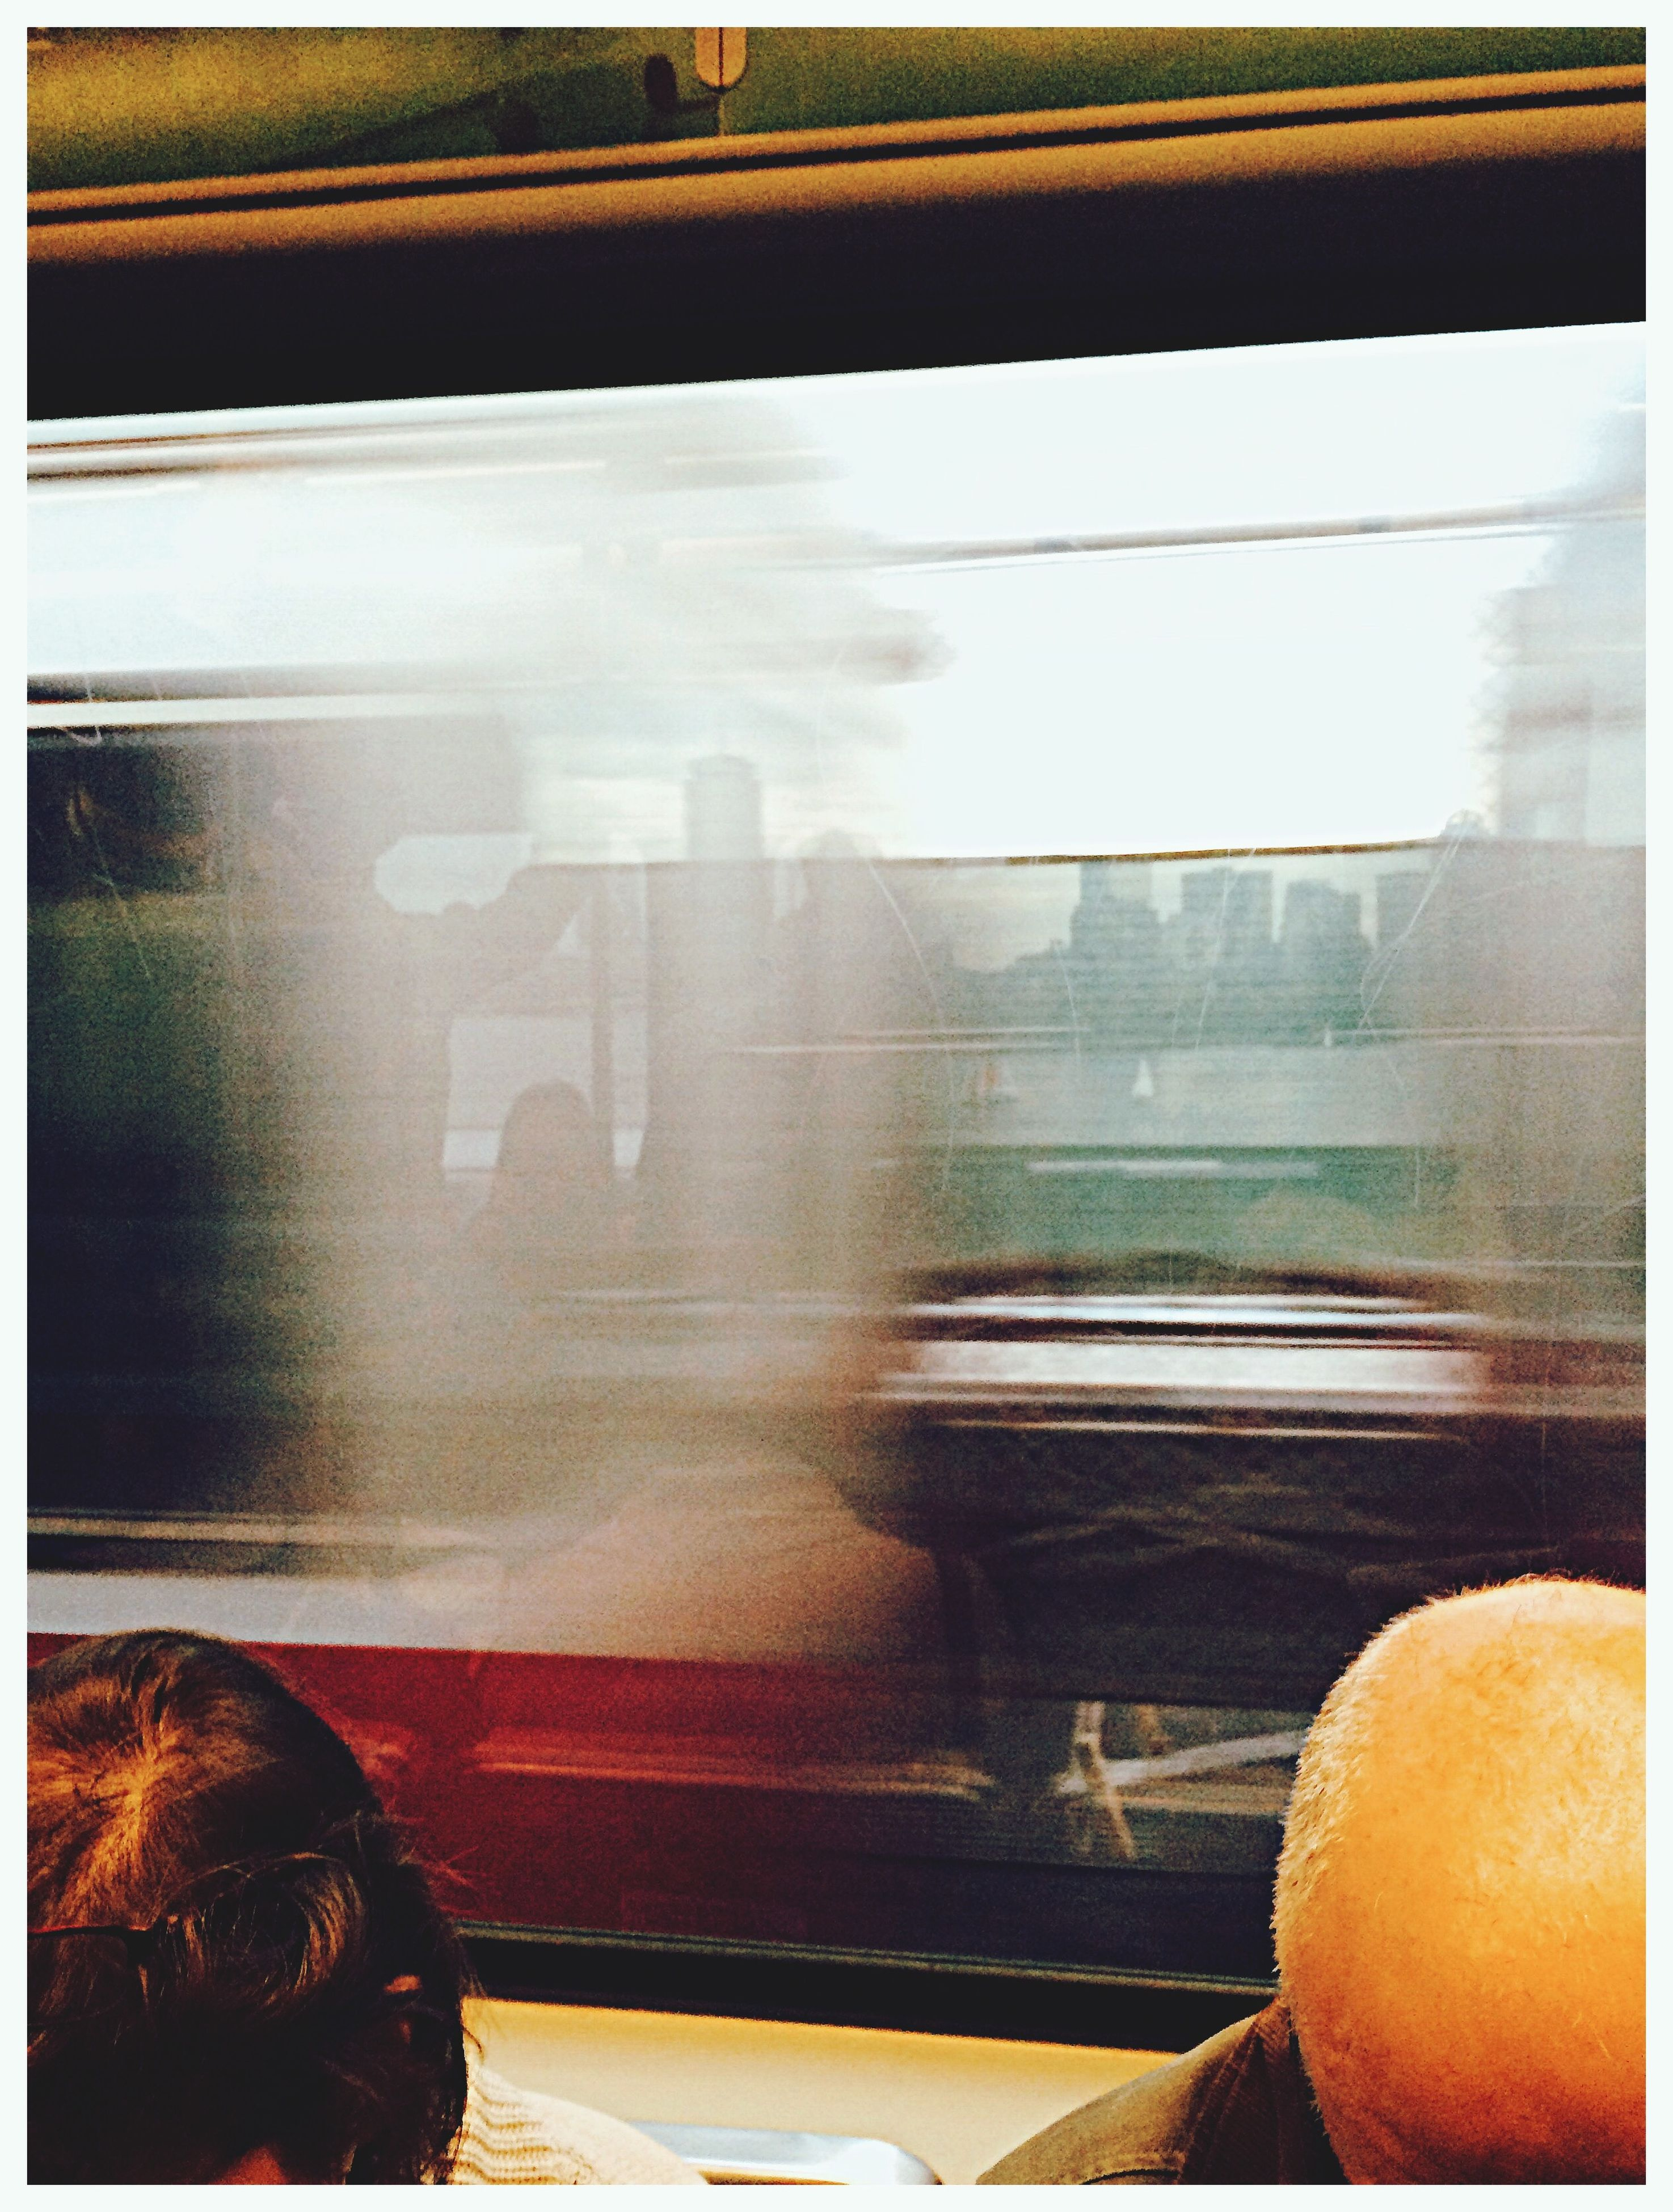 transportation, transfer print, mode of transport, auto post production filter, vehicle interior, glass - material, indoors, land vehicle, transparent, window, travel, public transportation, car, train - vehicle, on the move, blurred motion, car interior, windshield